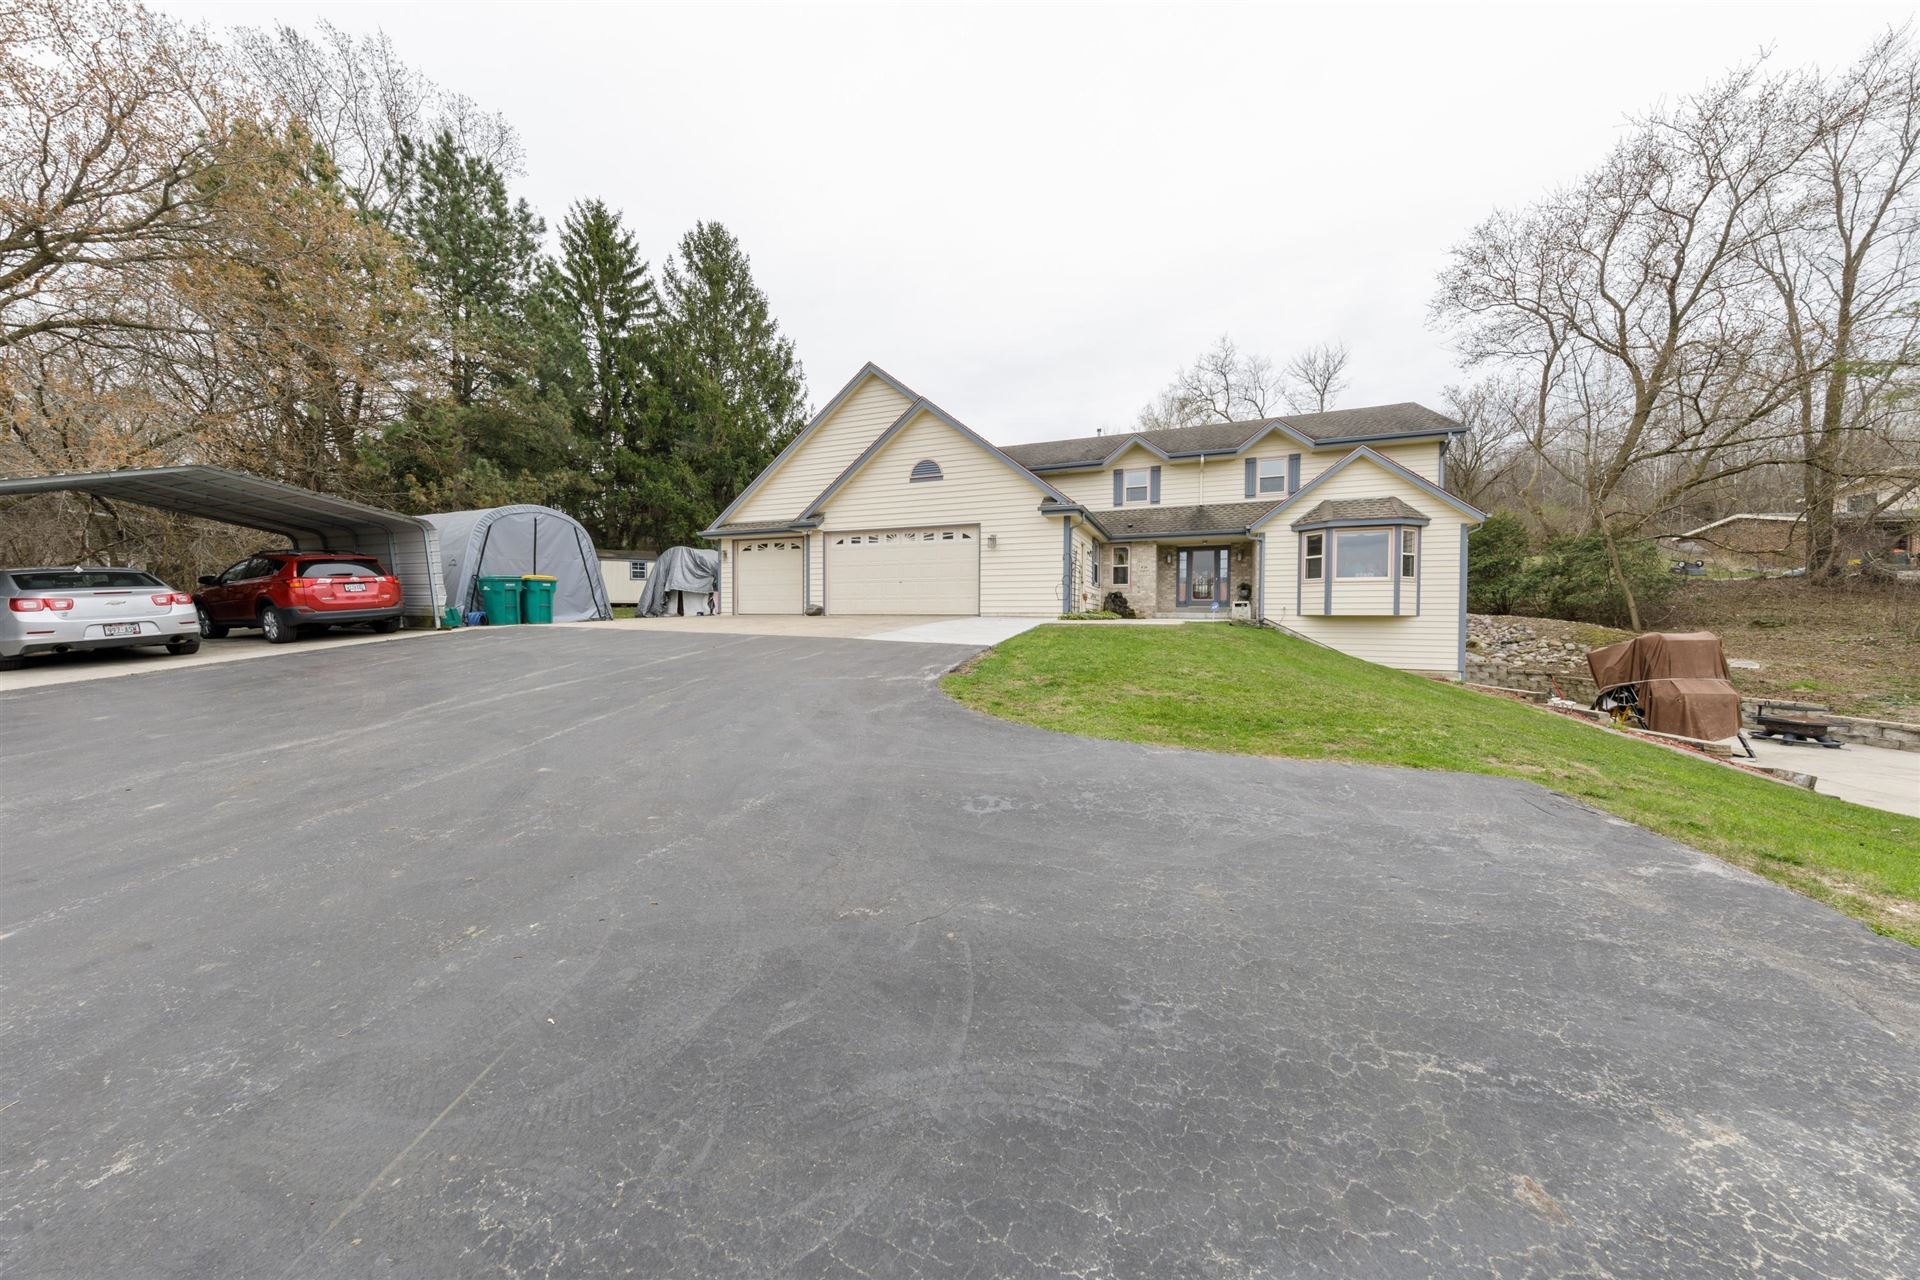 W206N10525 Appleton Ave, Germantown, WI 53022 - #: 1686533